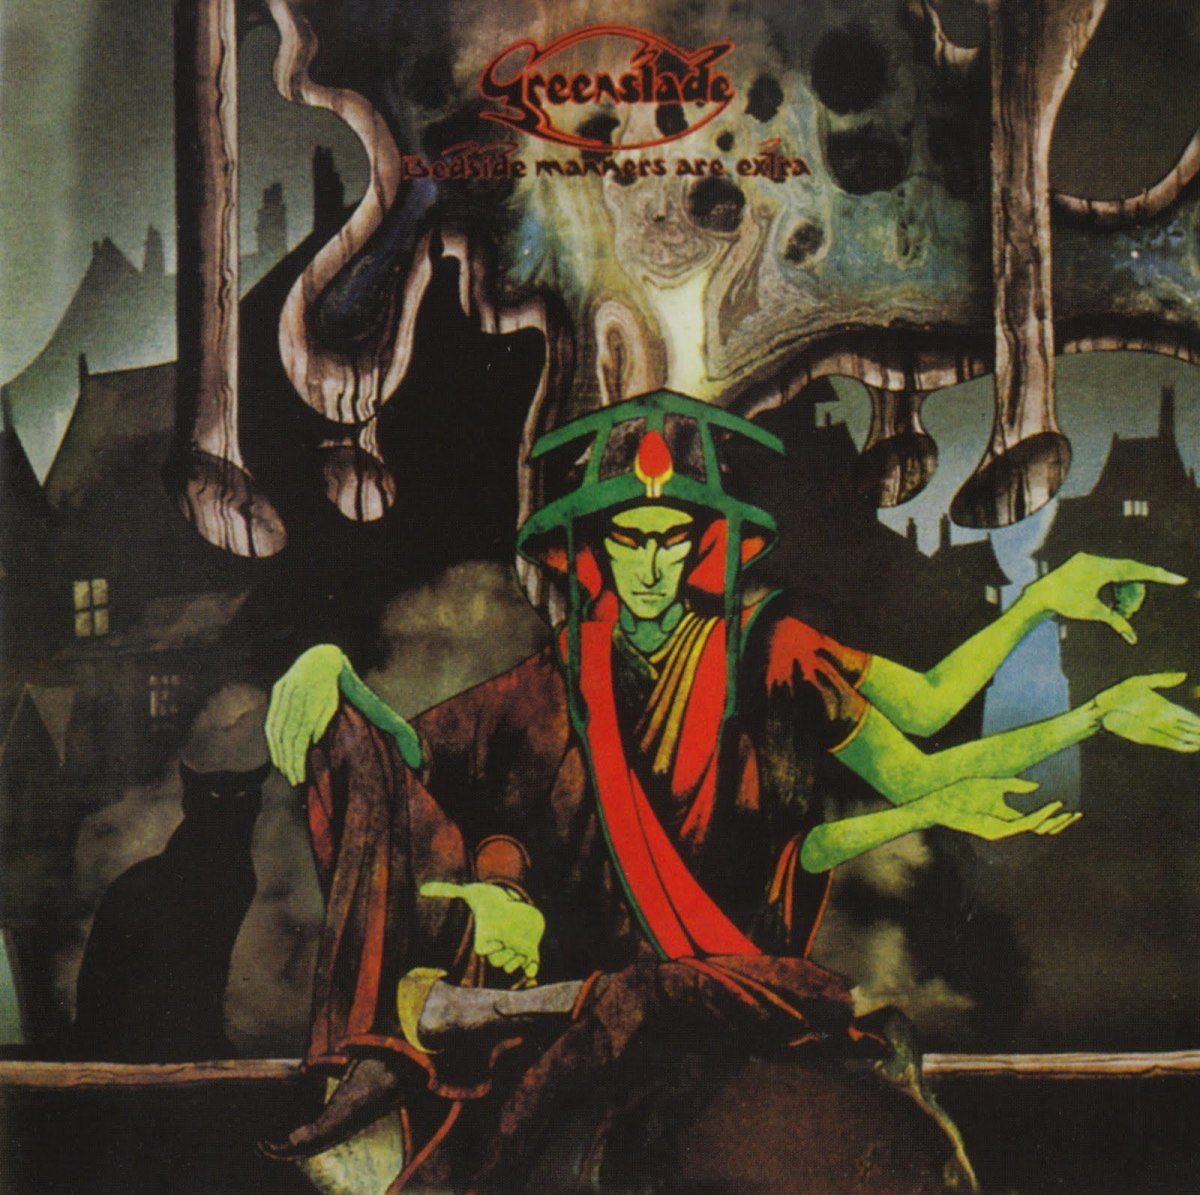 "Greenslade ""Bedside Manners Are Extra"" Warner Brothers Records K46259 12"" LP Vinyl Record, UK Pressing (1973) Gatefold Album Cover Art by Roger Dean"